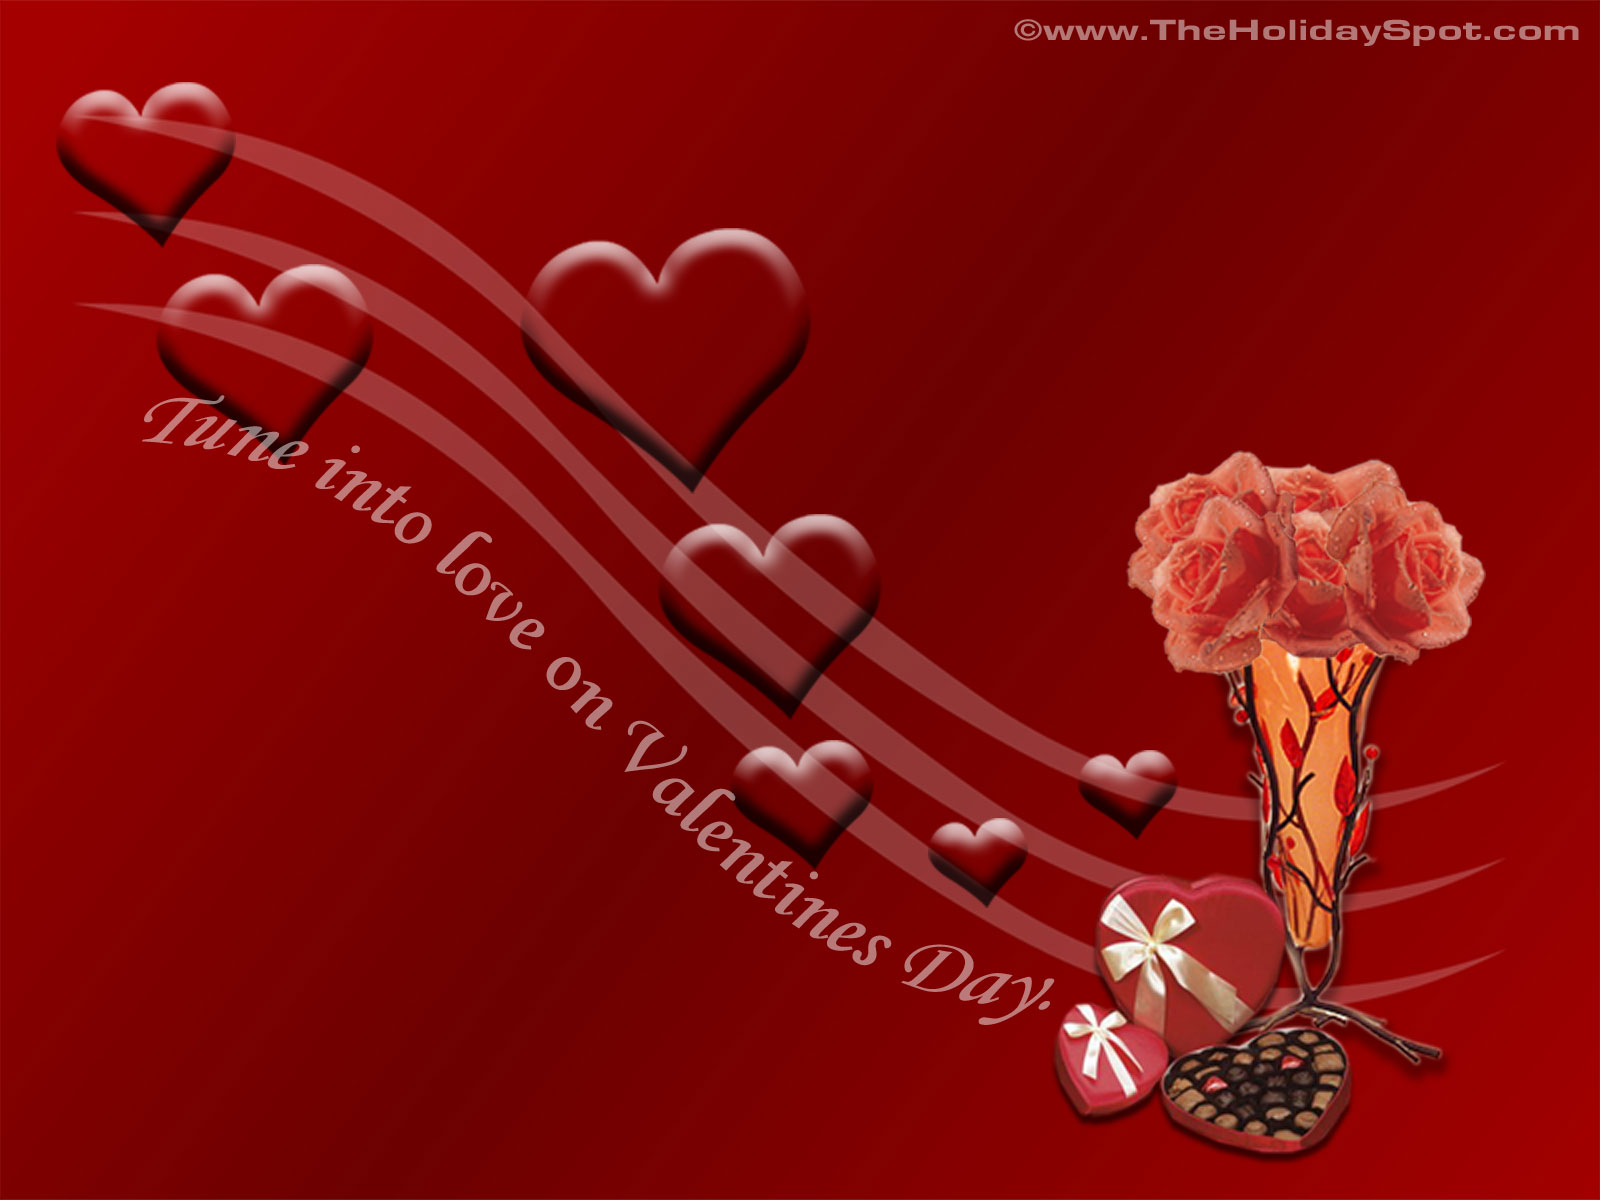 free wallpapers: valentine's day special 3d greetings and animation